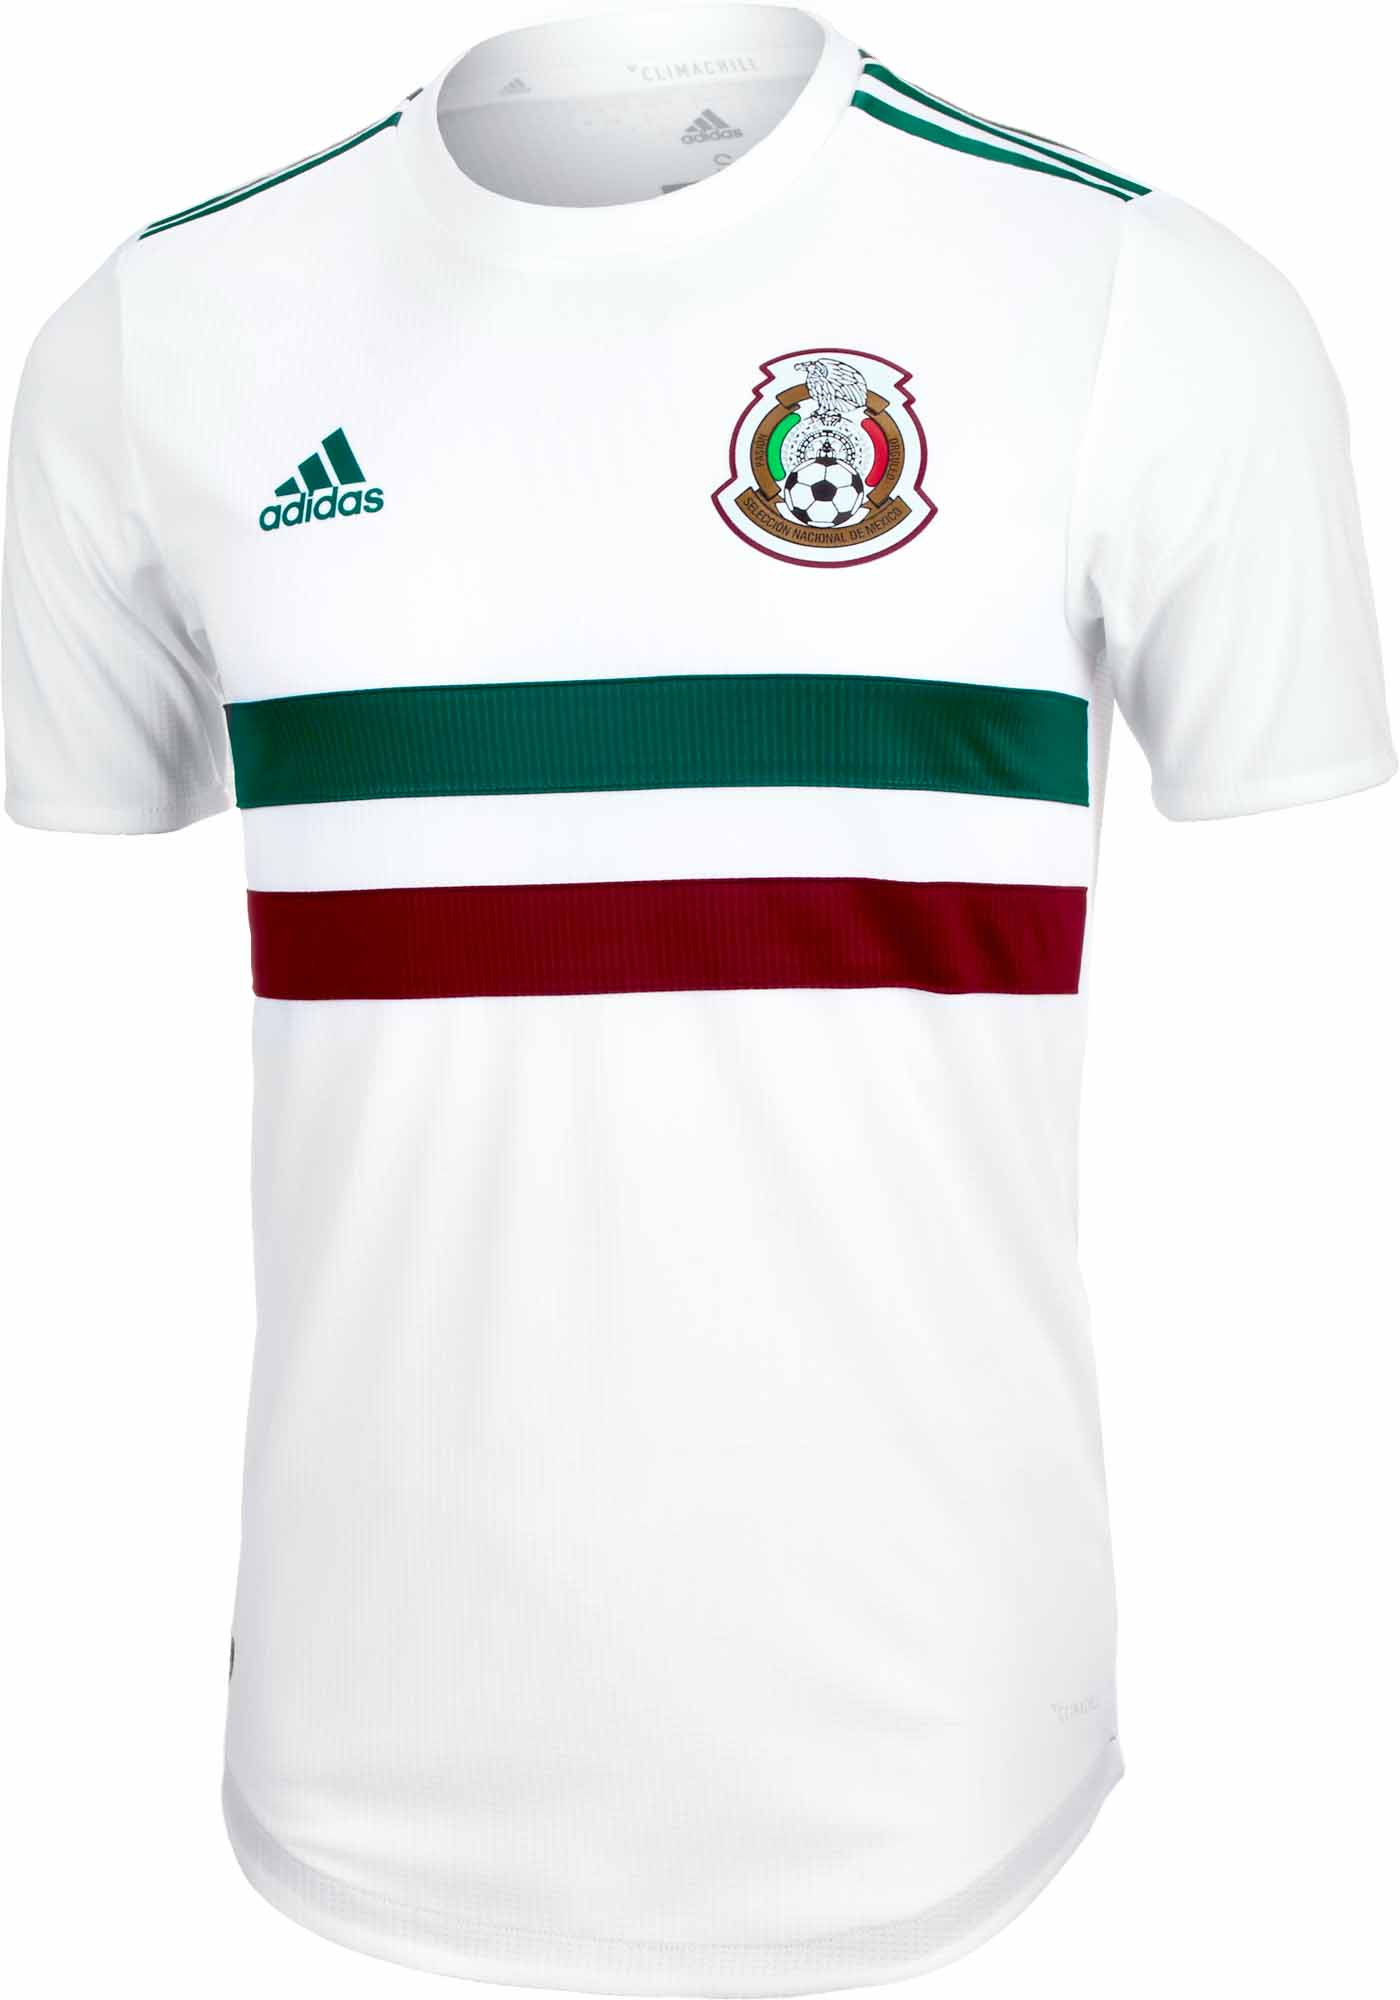 ce801288c adidas Mexico Authentic Away Jersey 2018-19 - SoccerPro.com